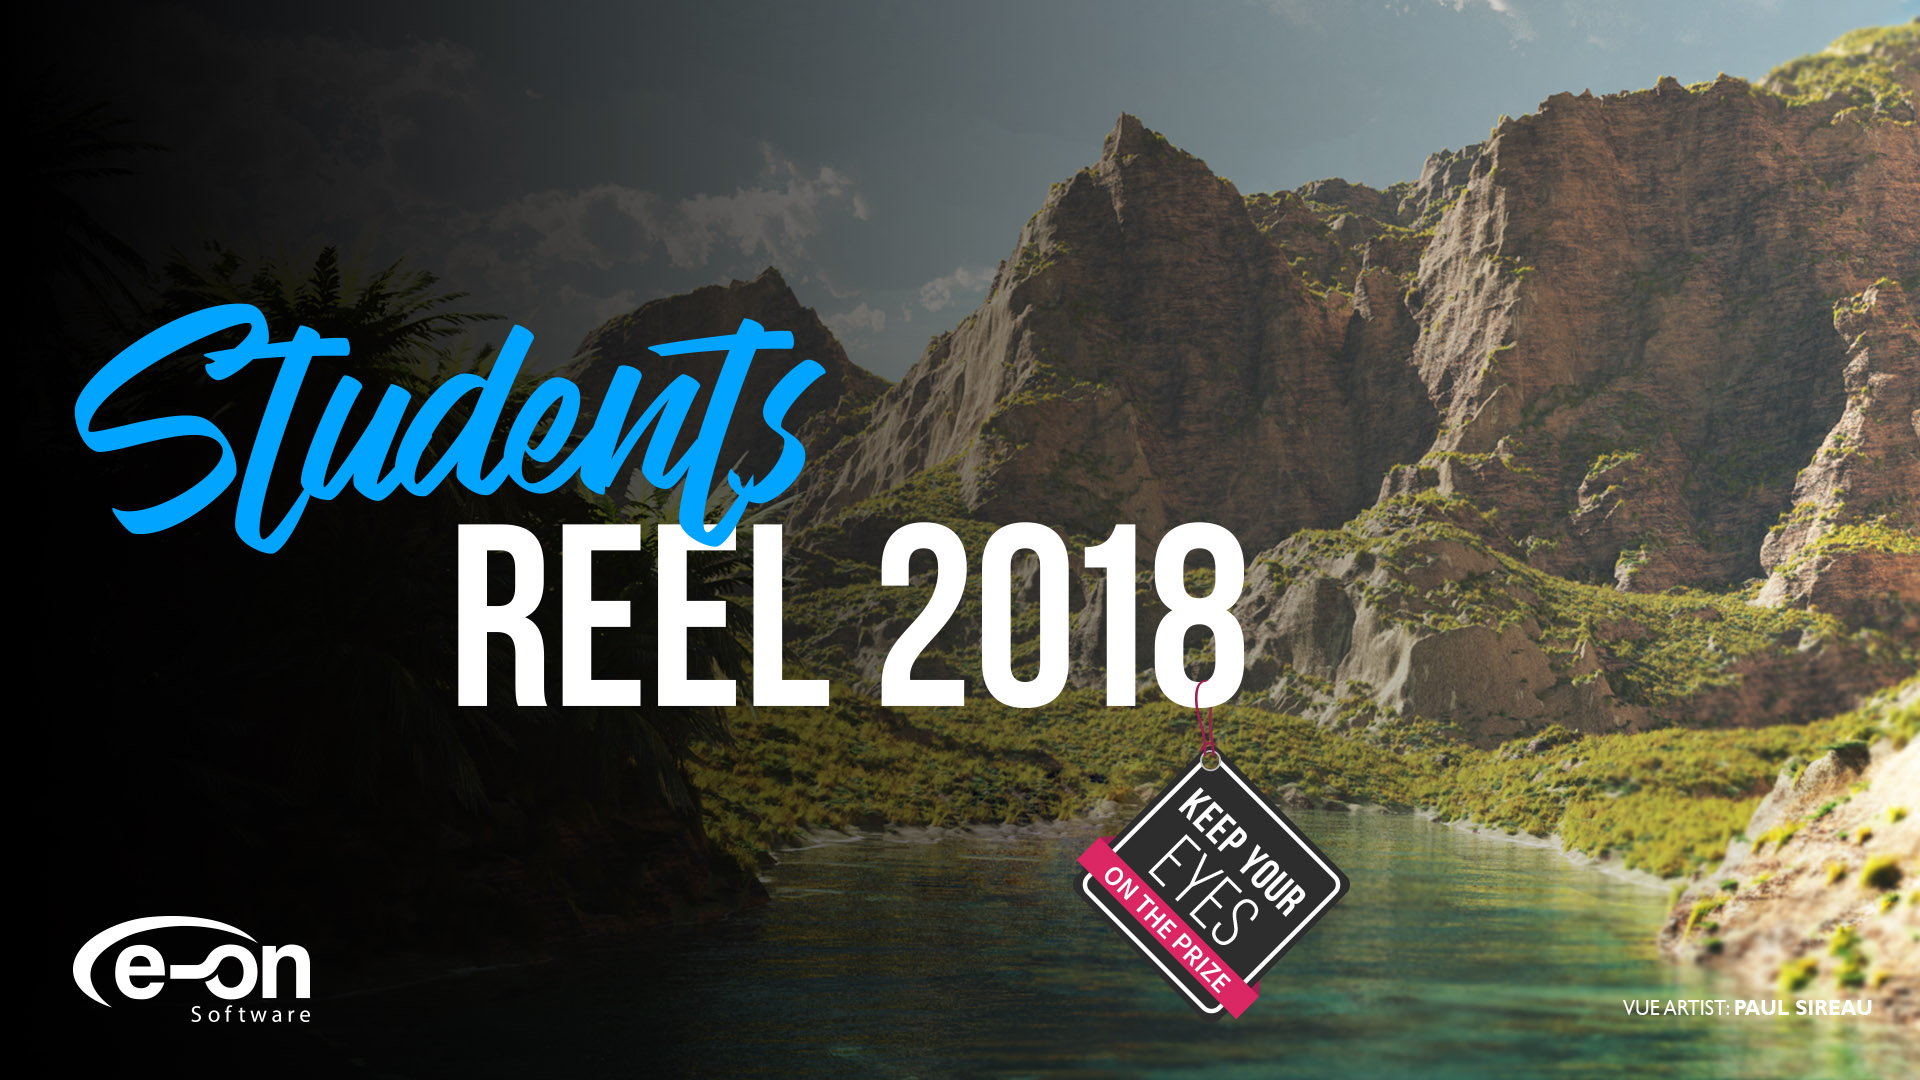 Students reel 2018